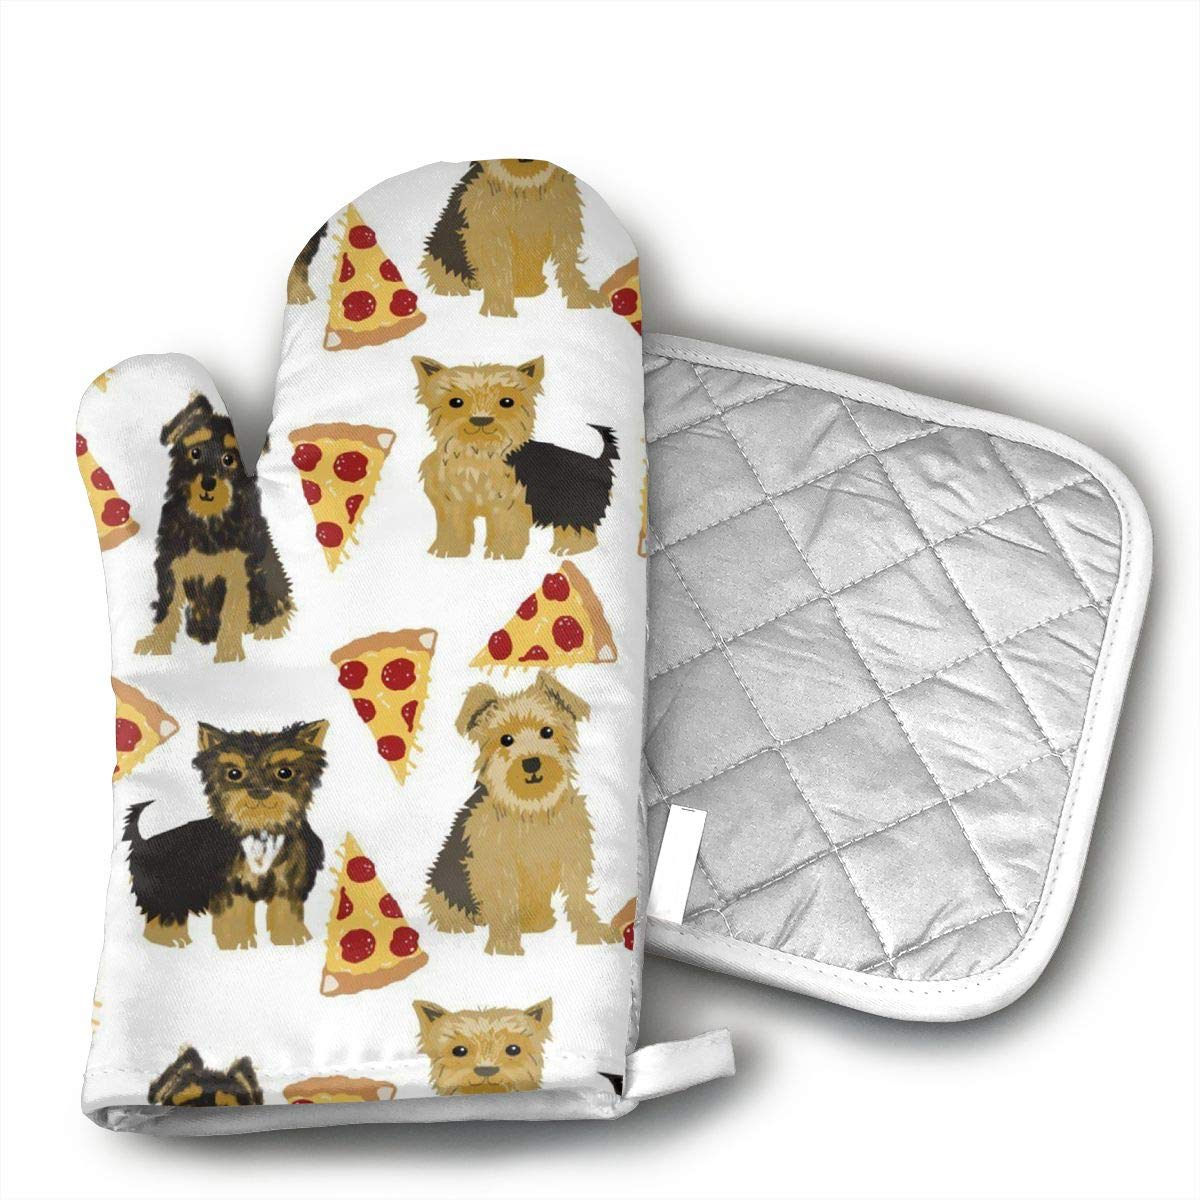 Sjiwqoj8 Yorkie Pizza Kitchen Oven Mitts,Oven Mitts and Pot Holders,Heat Resistant with Quilted Cotton Lining,Cooking,Baking,Grilling,Barbecue